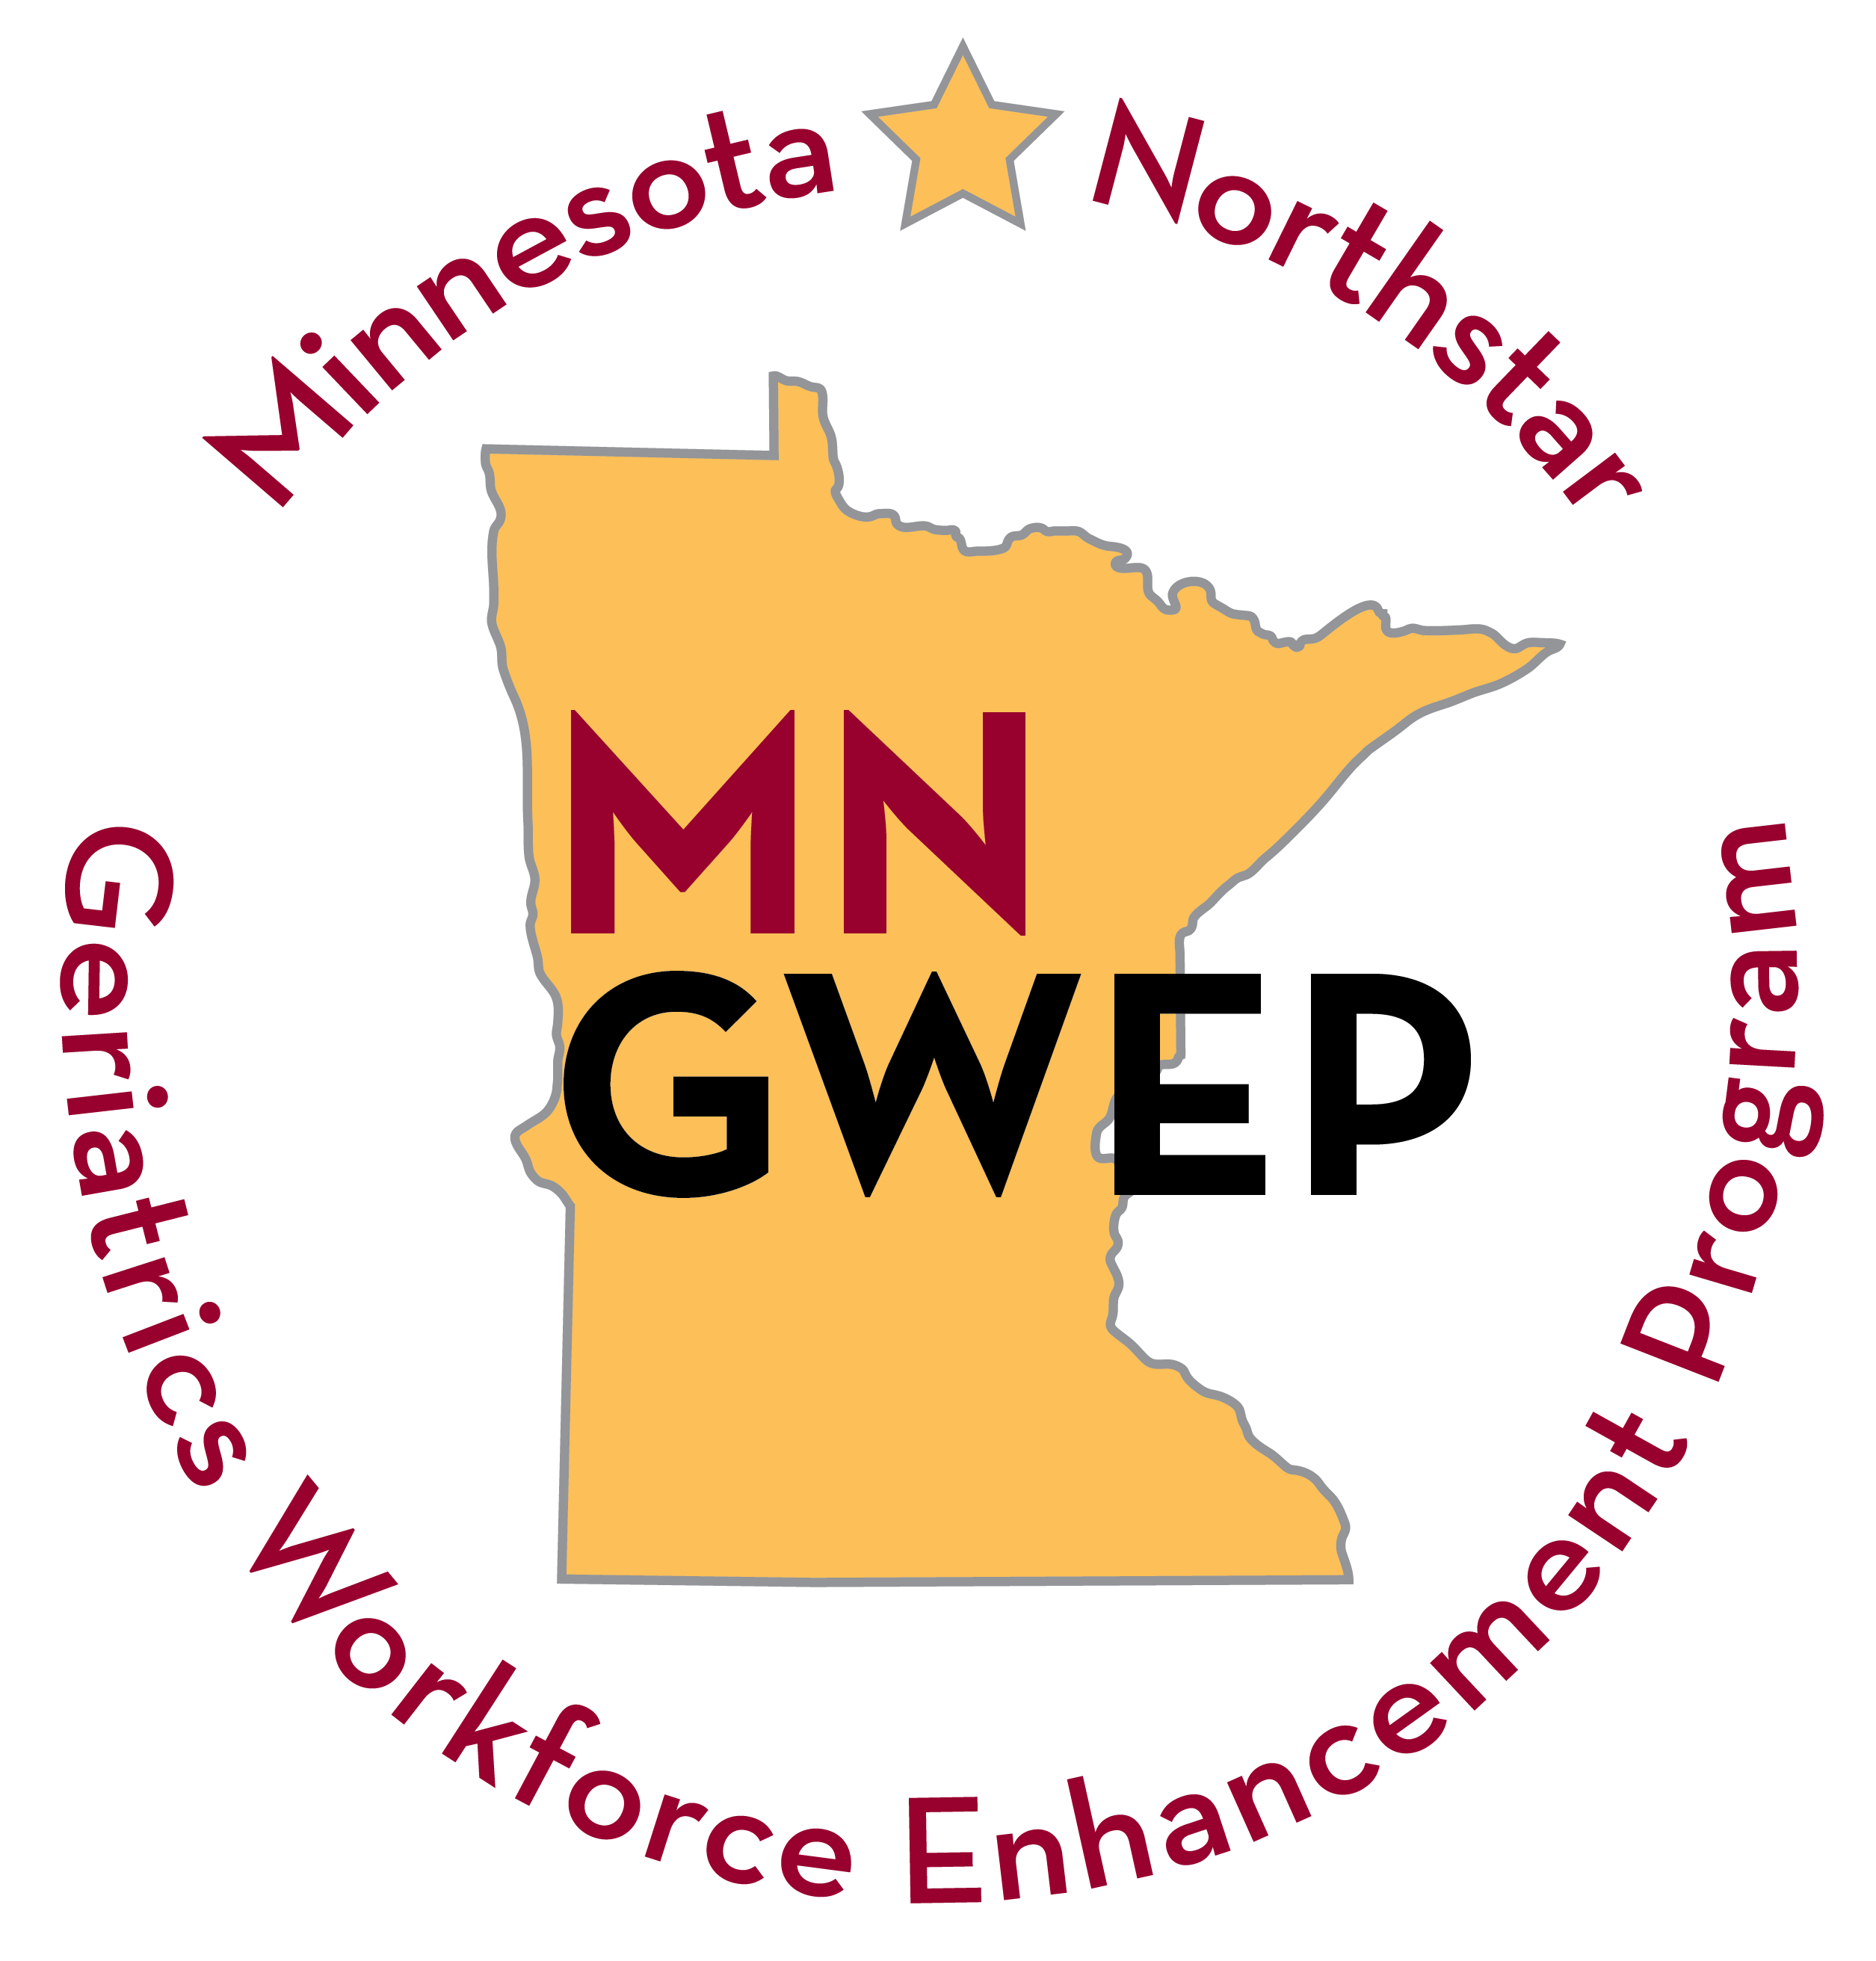 Minnesota Northstar Geriatrics Workforce Enhancement Program